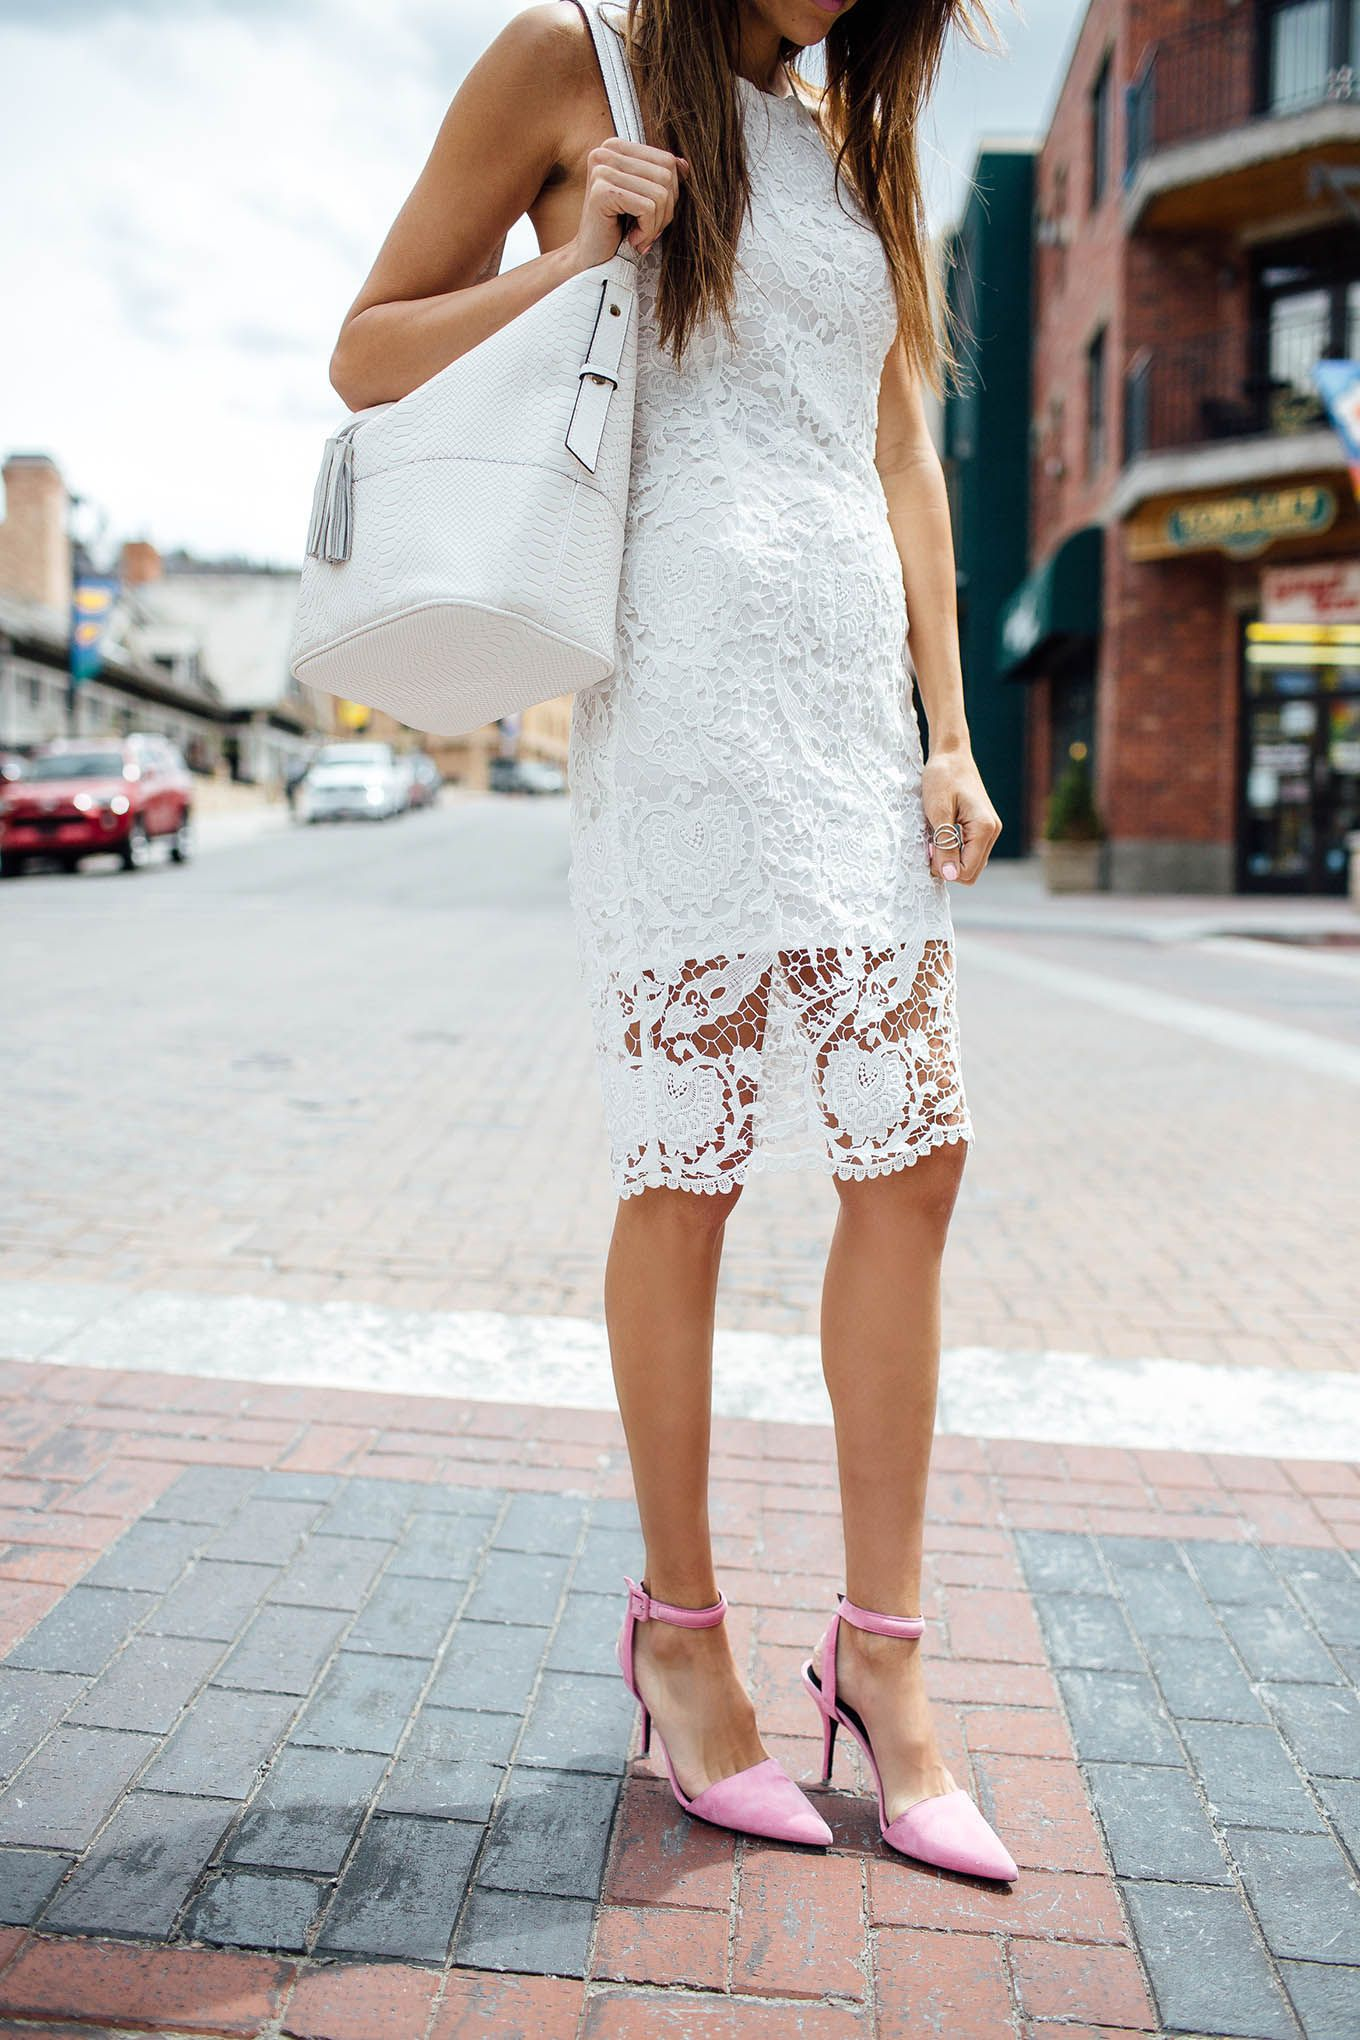 b6c49c6f6 Memorial Day sale roundup with this all white lace dress